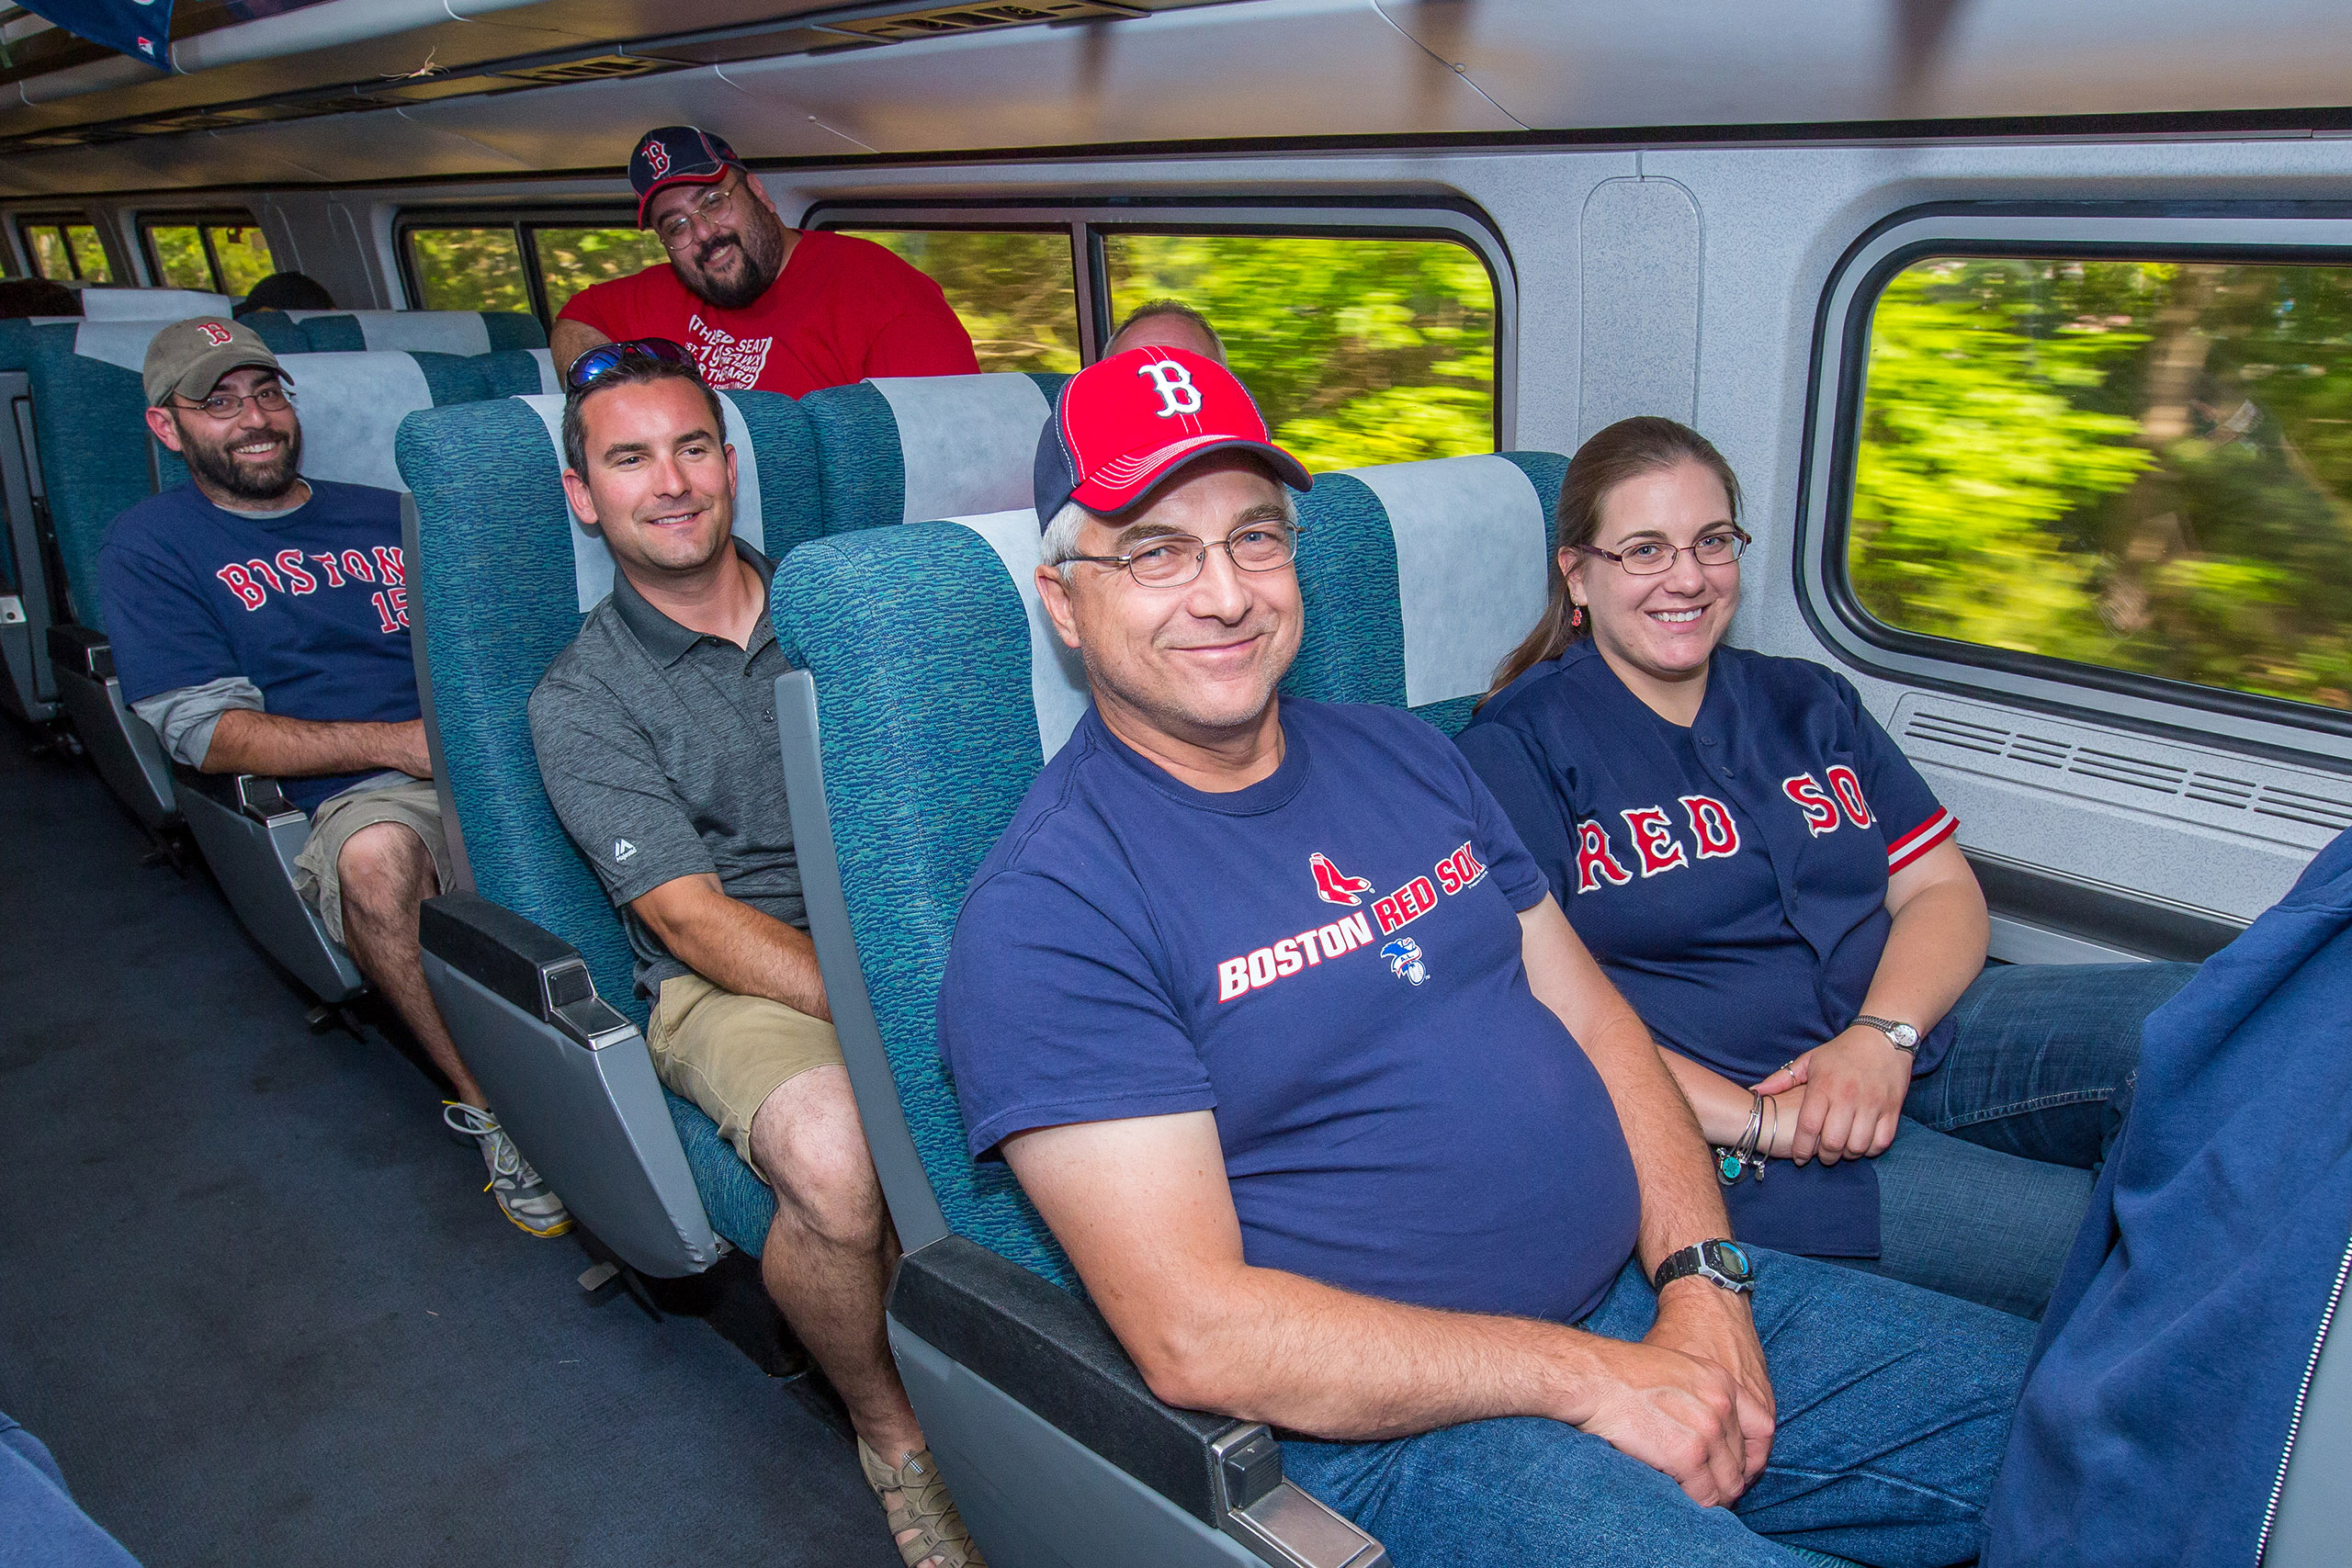 Family red sox picture